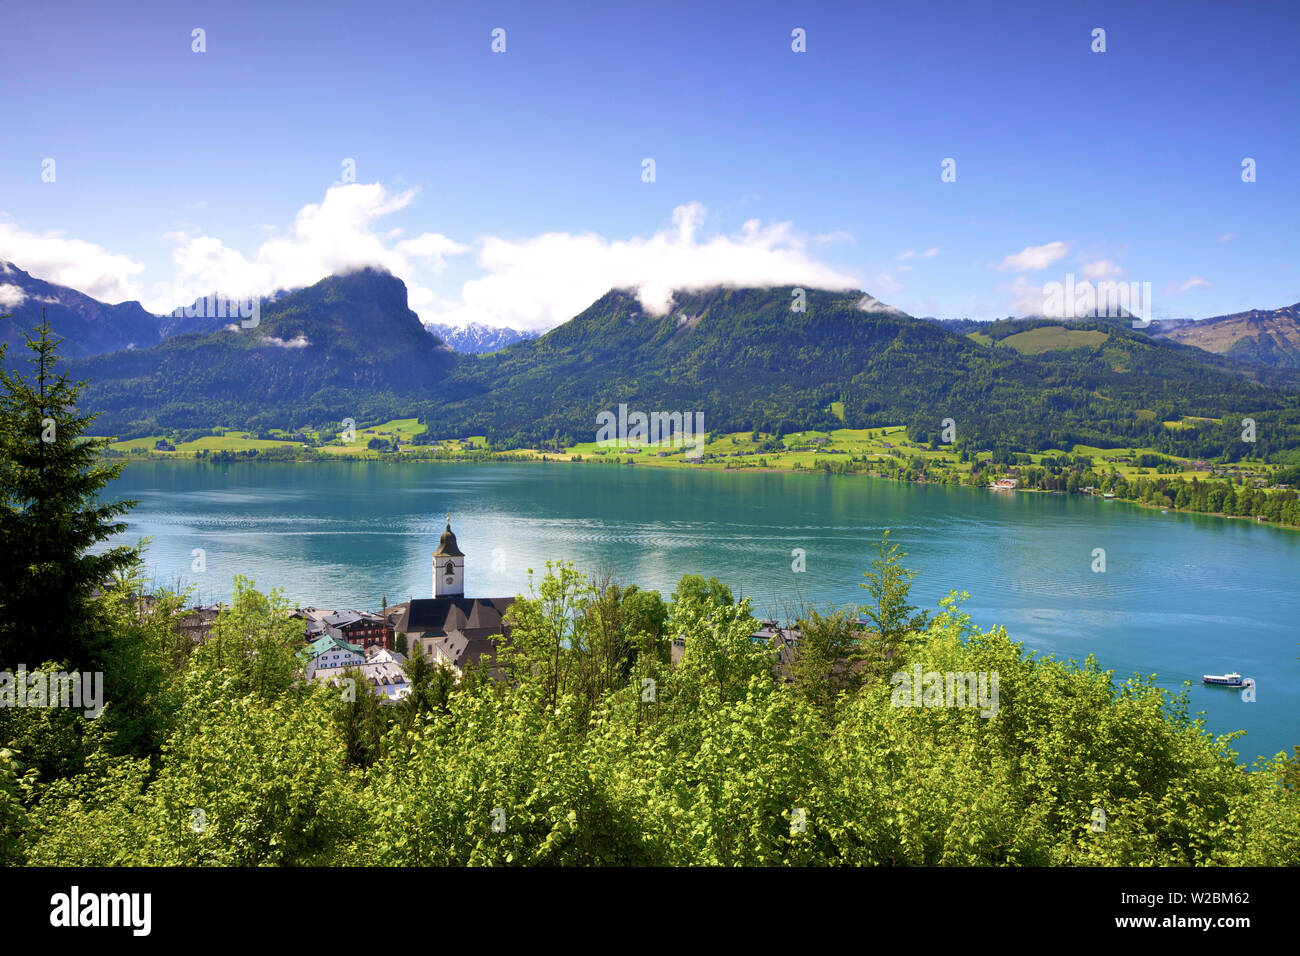 A Ferry Boat on Wolfgangsee Lake, St. Wolfgang, Austria, Europe, - Stock Image